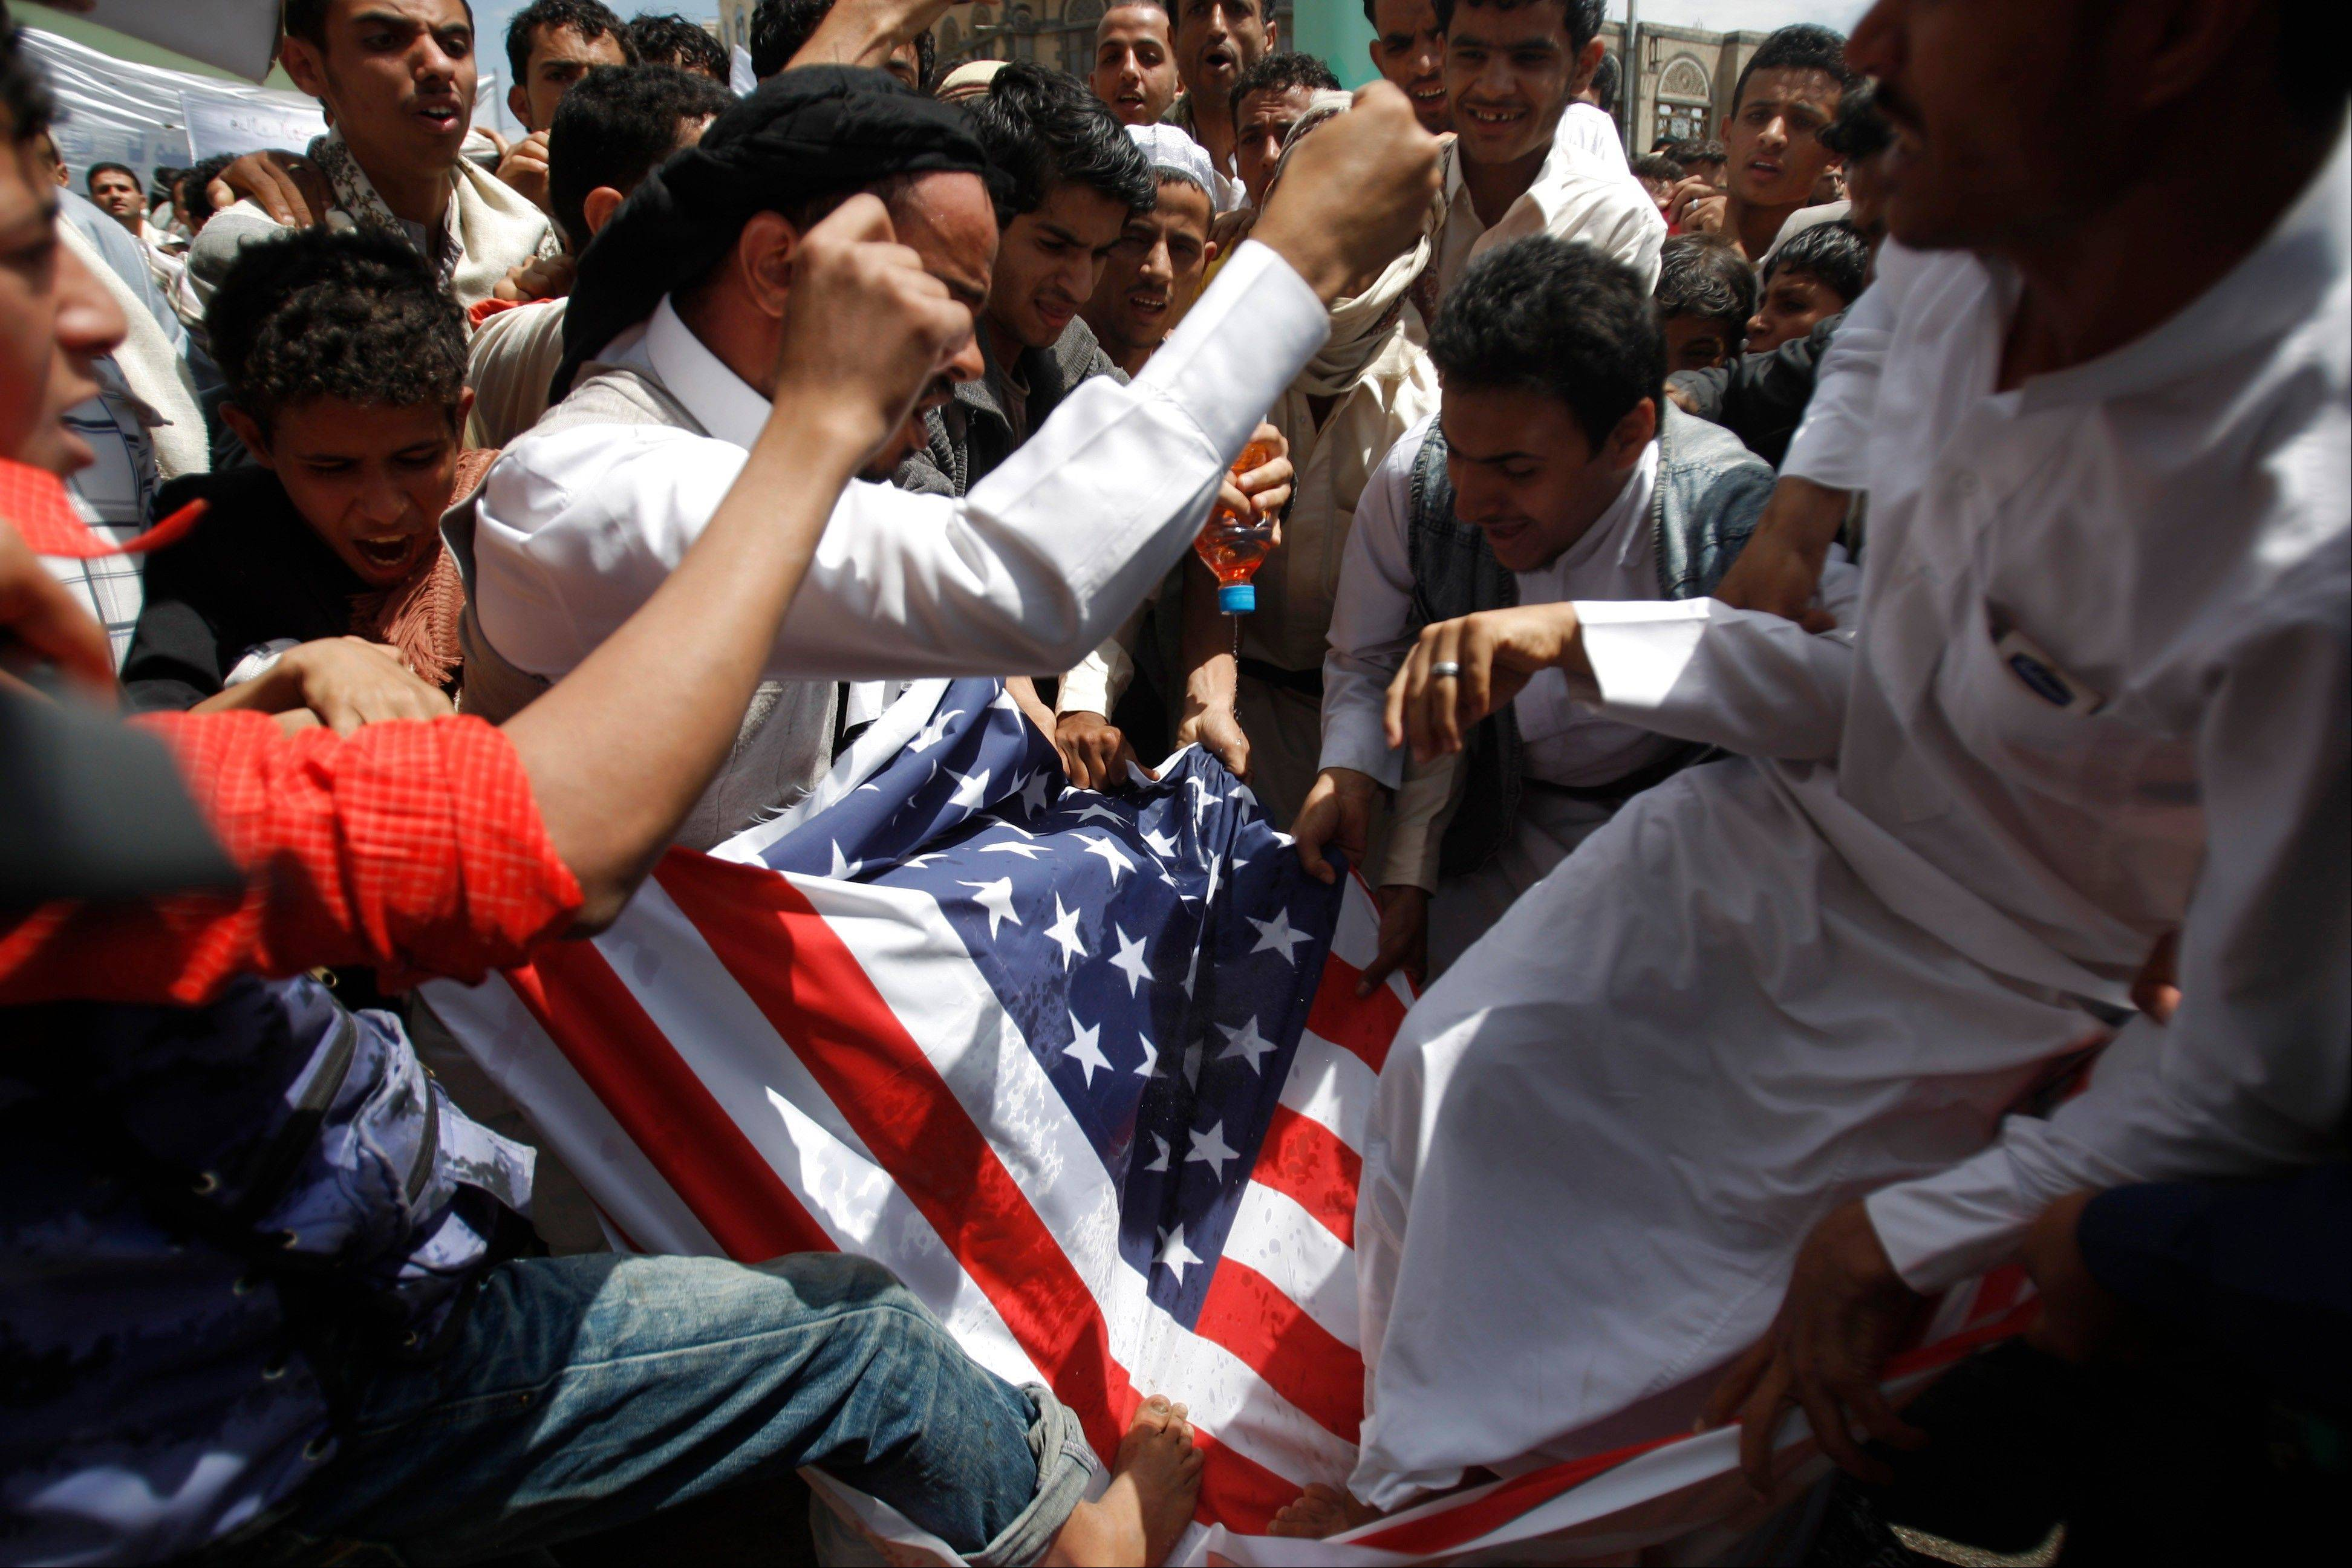 Protesters destroy an American flag pulled down during clashes with police near the U.S. Embassy in Sanaa, Yemen, Friday, Sept. 14, 2012, as part of widespread anger across the Muslim world about a film ridiculing Islam's Prophet Muhammad.